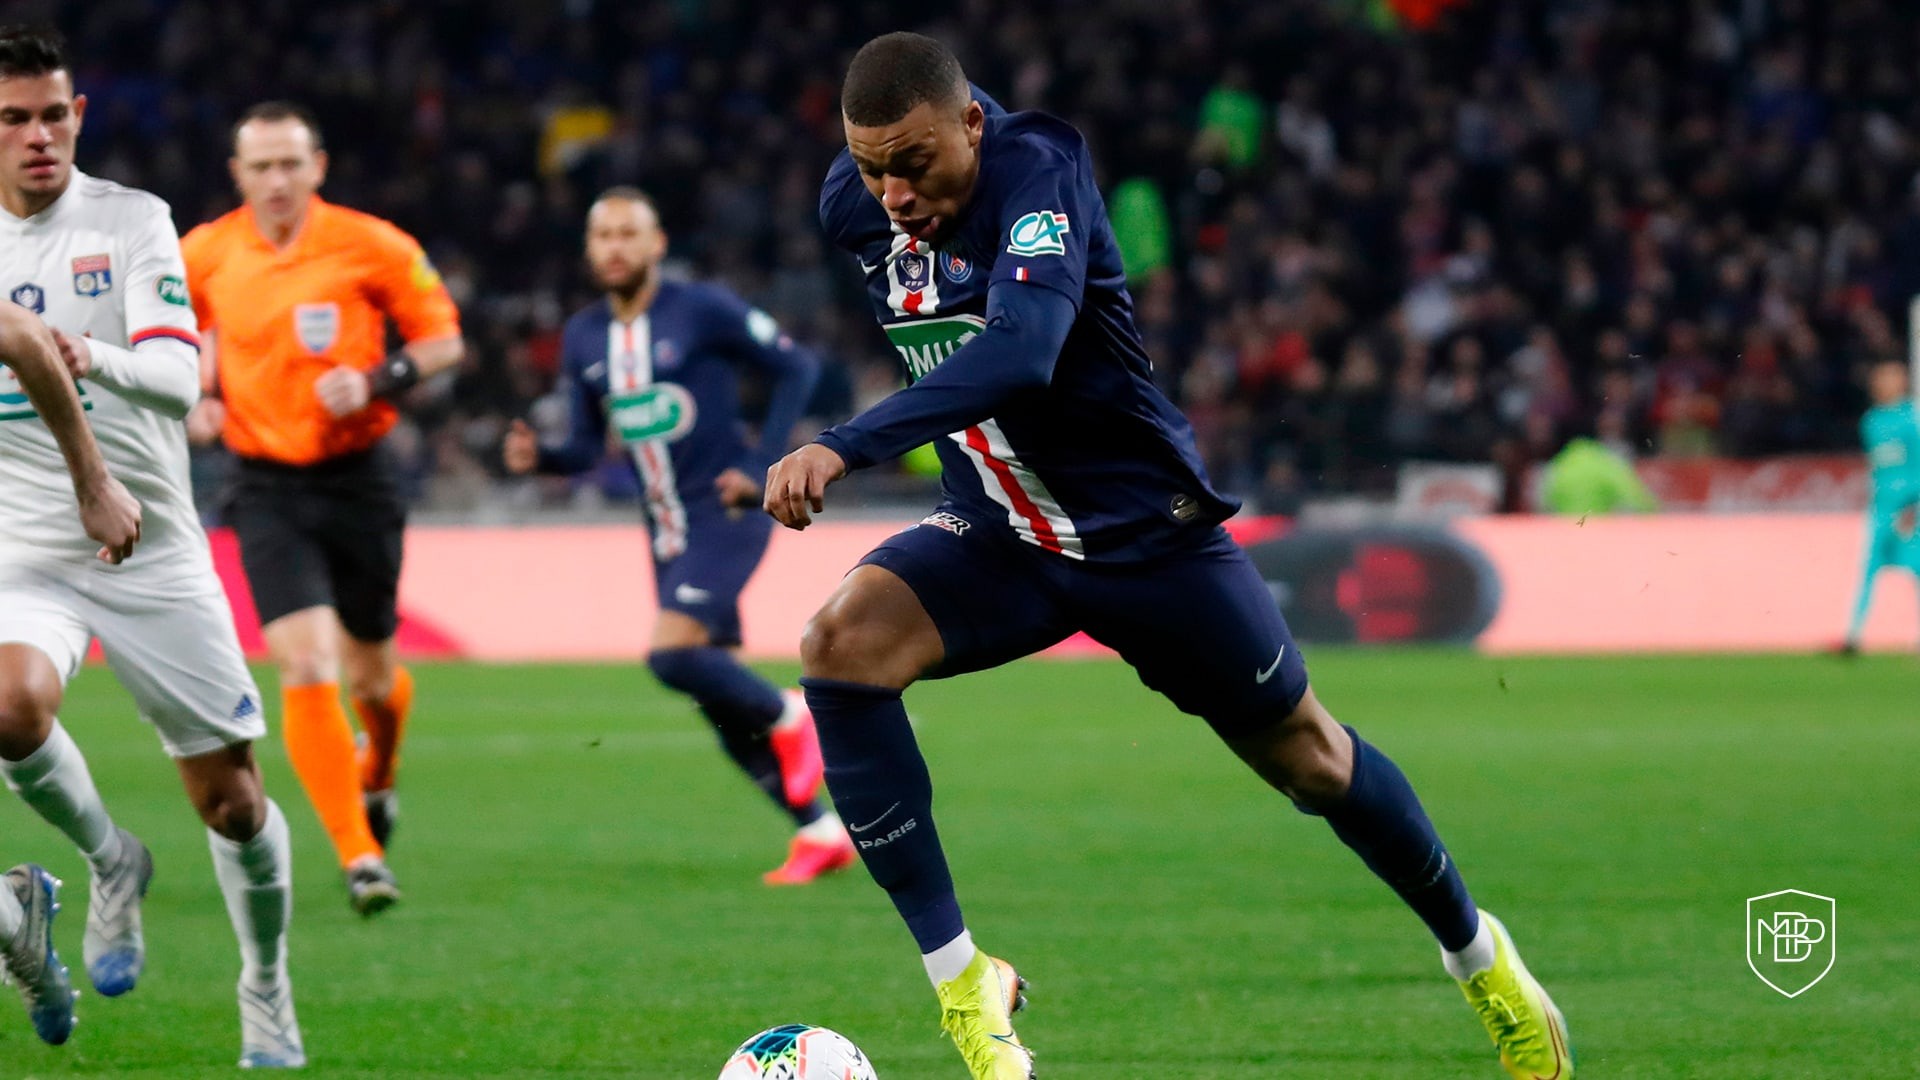 Mbappe V Haaland Who Fits Better To Real Madrid S Game Model Mbp